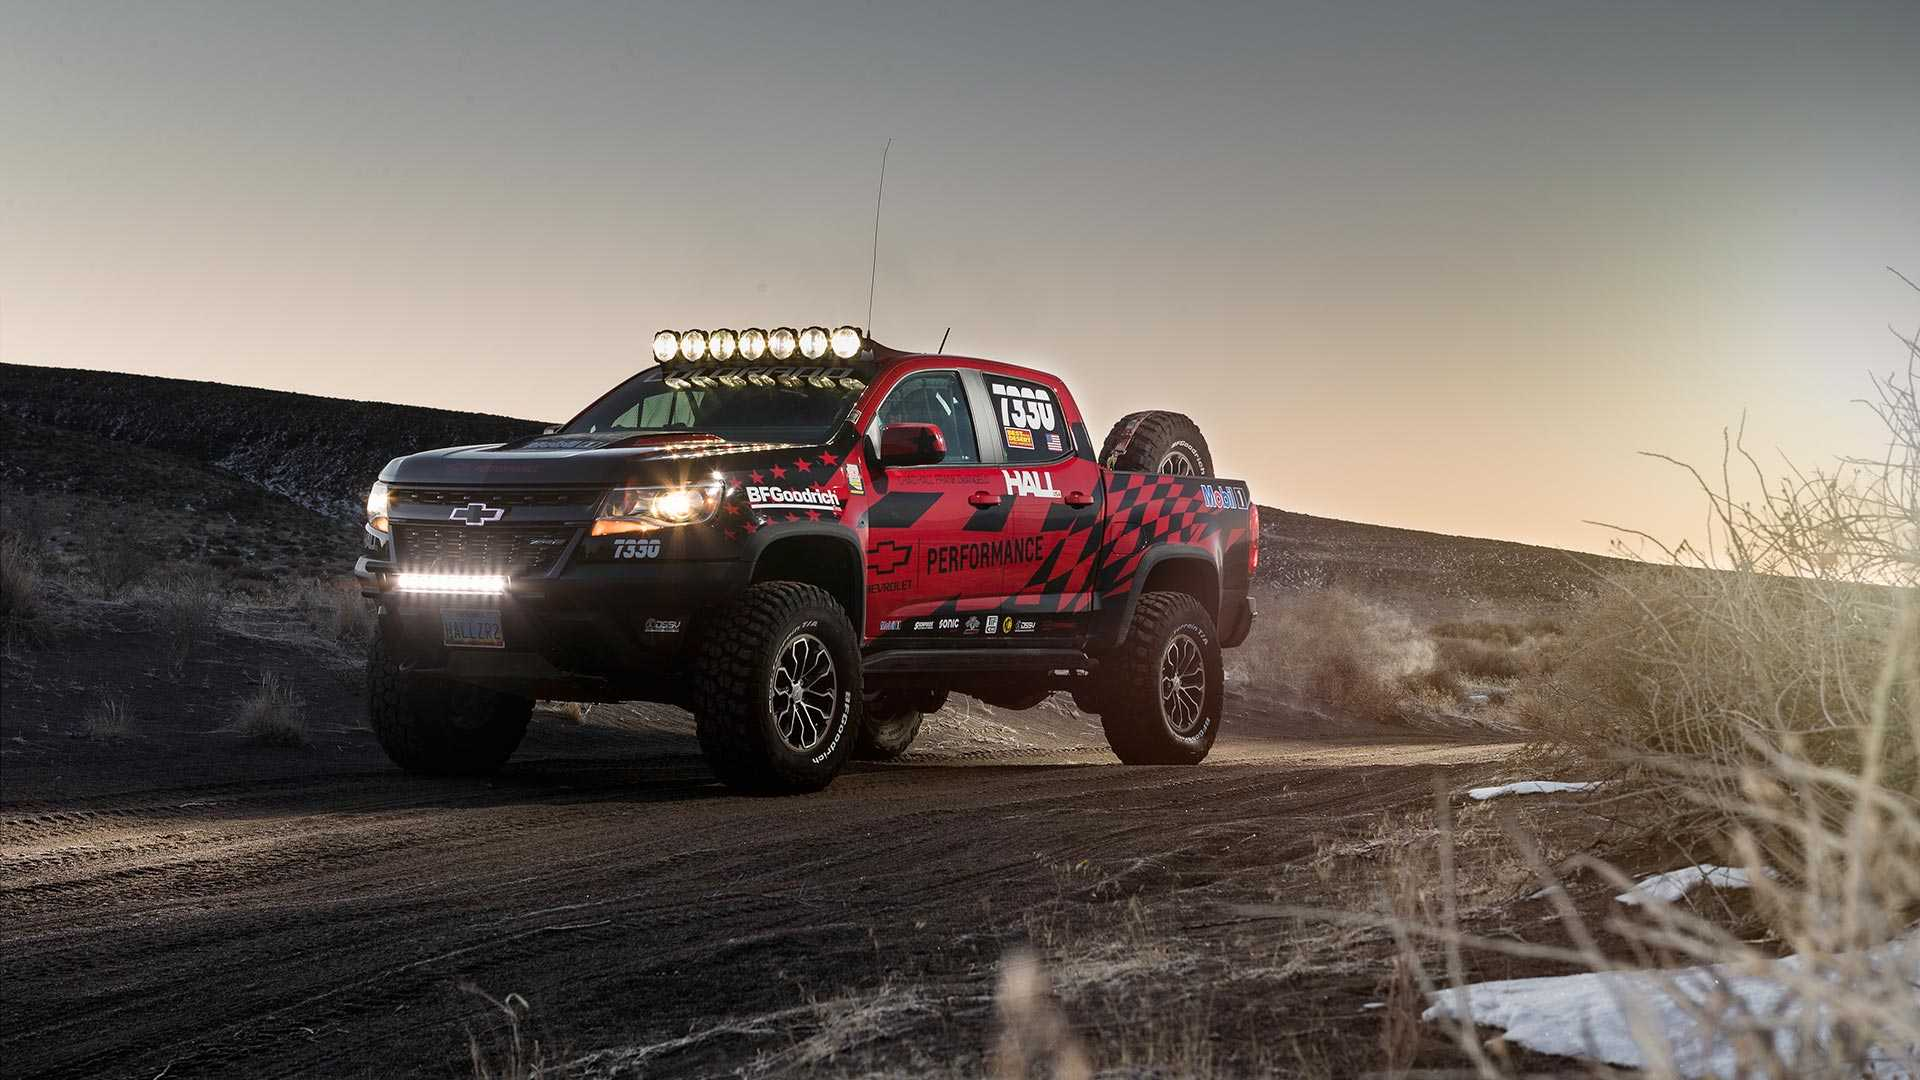 Chevrolet just announced 15 performance parts for the new Colorado ZR2 Bison pickup truck